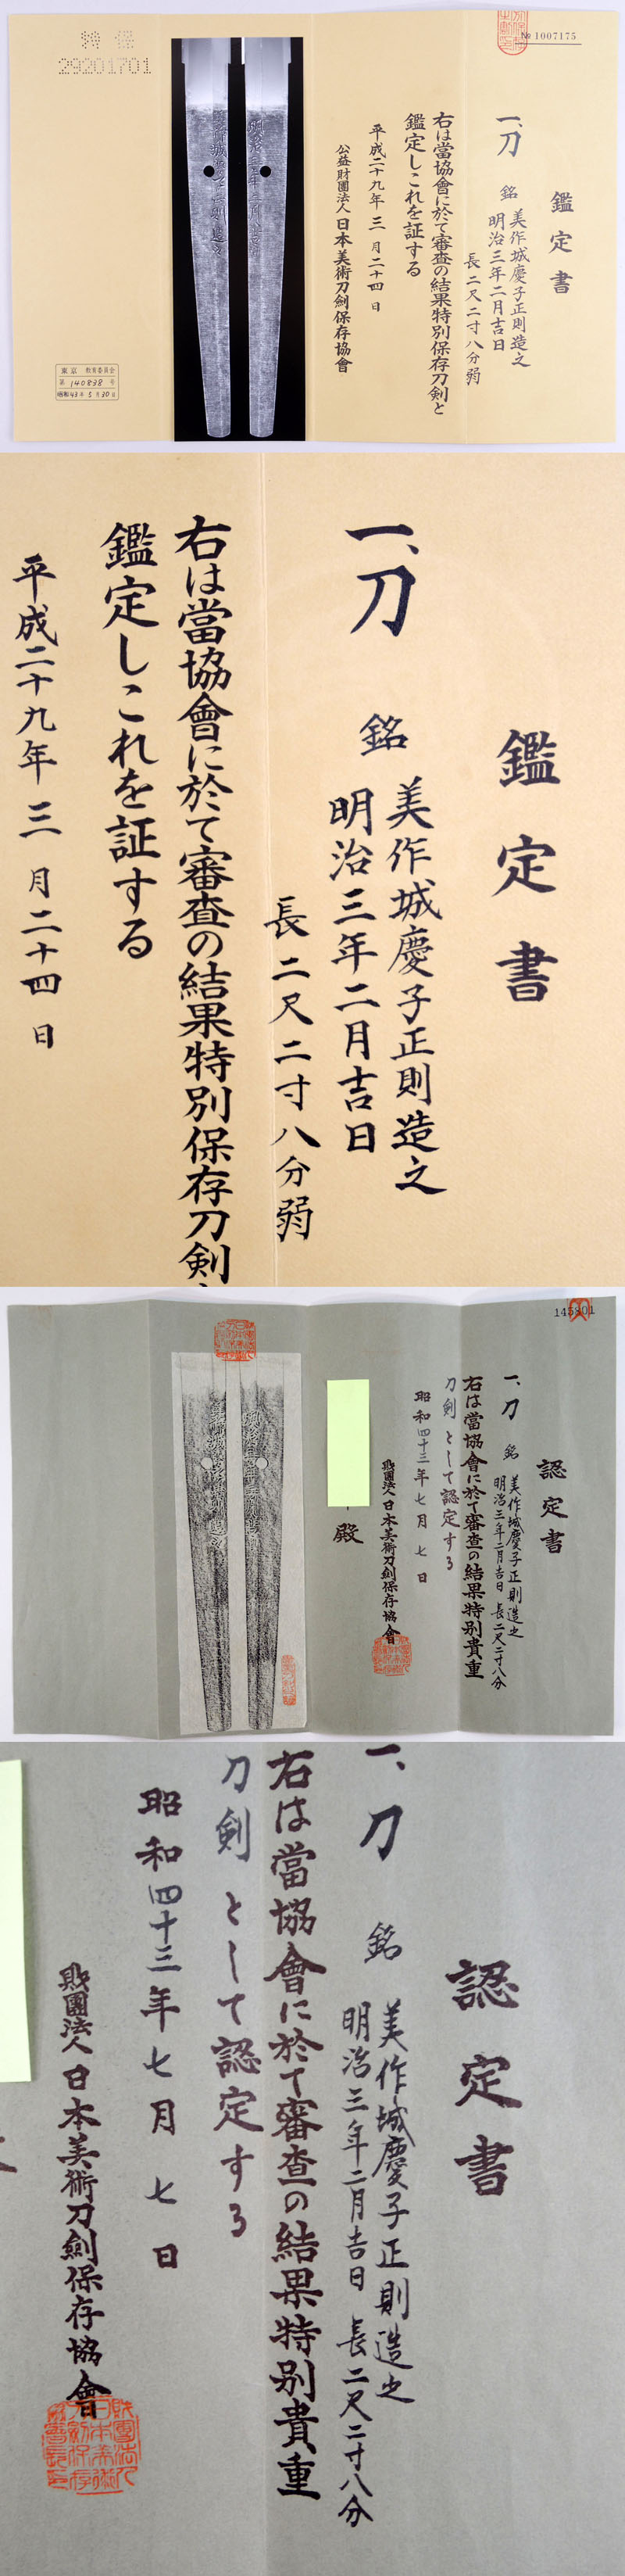 美作城慶子正則造之 Picture of Certificate